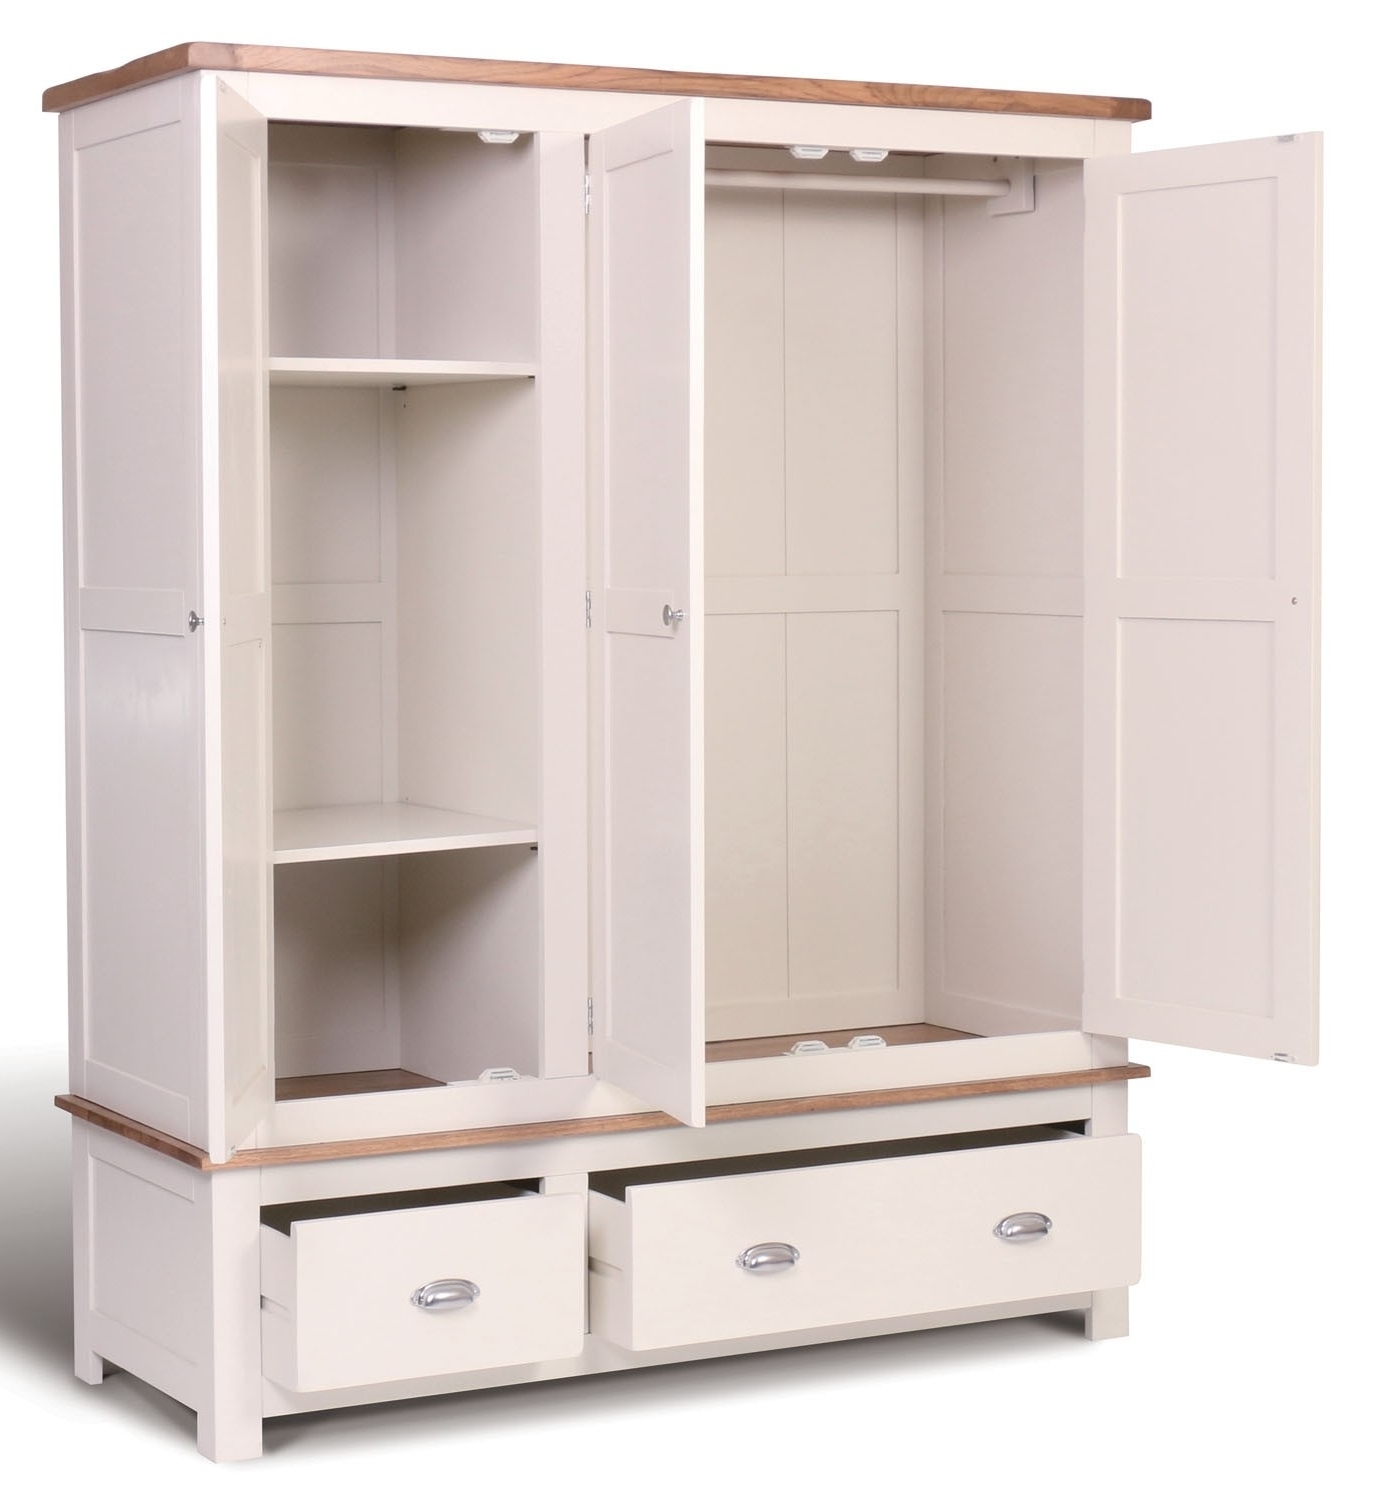 Famous Wardrobes With Drawers And Shelves Within Triple Wardrobe With Shelves And Drawers • Drawer Design (View 5 of 15)